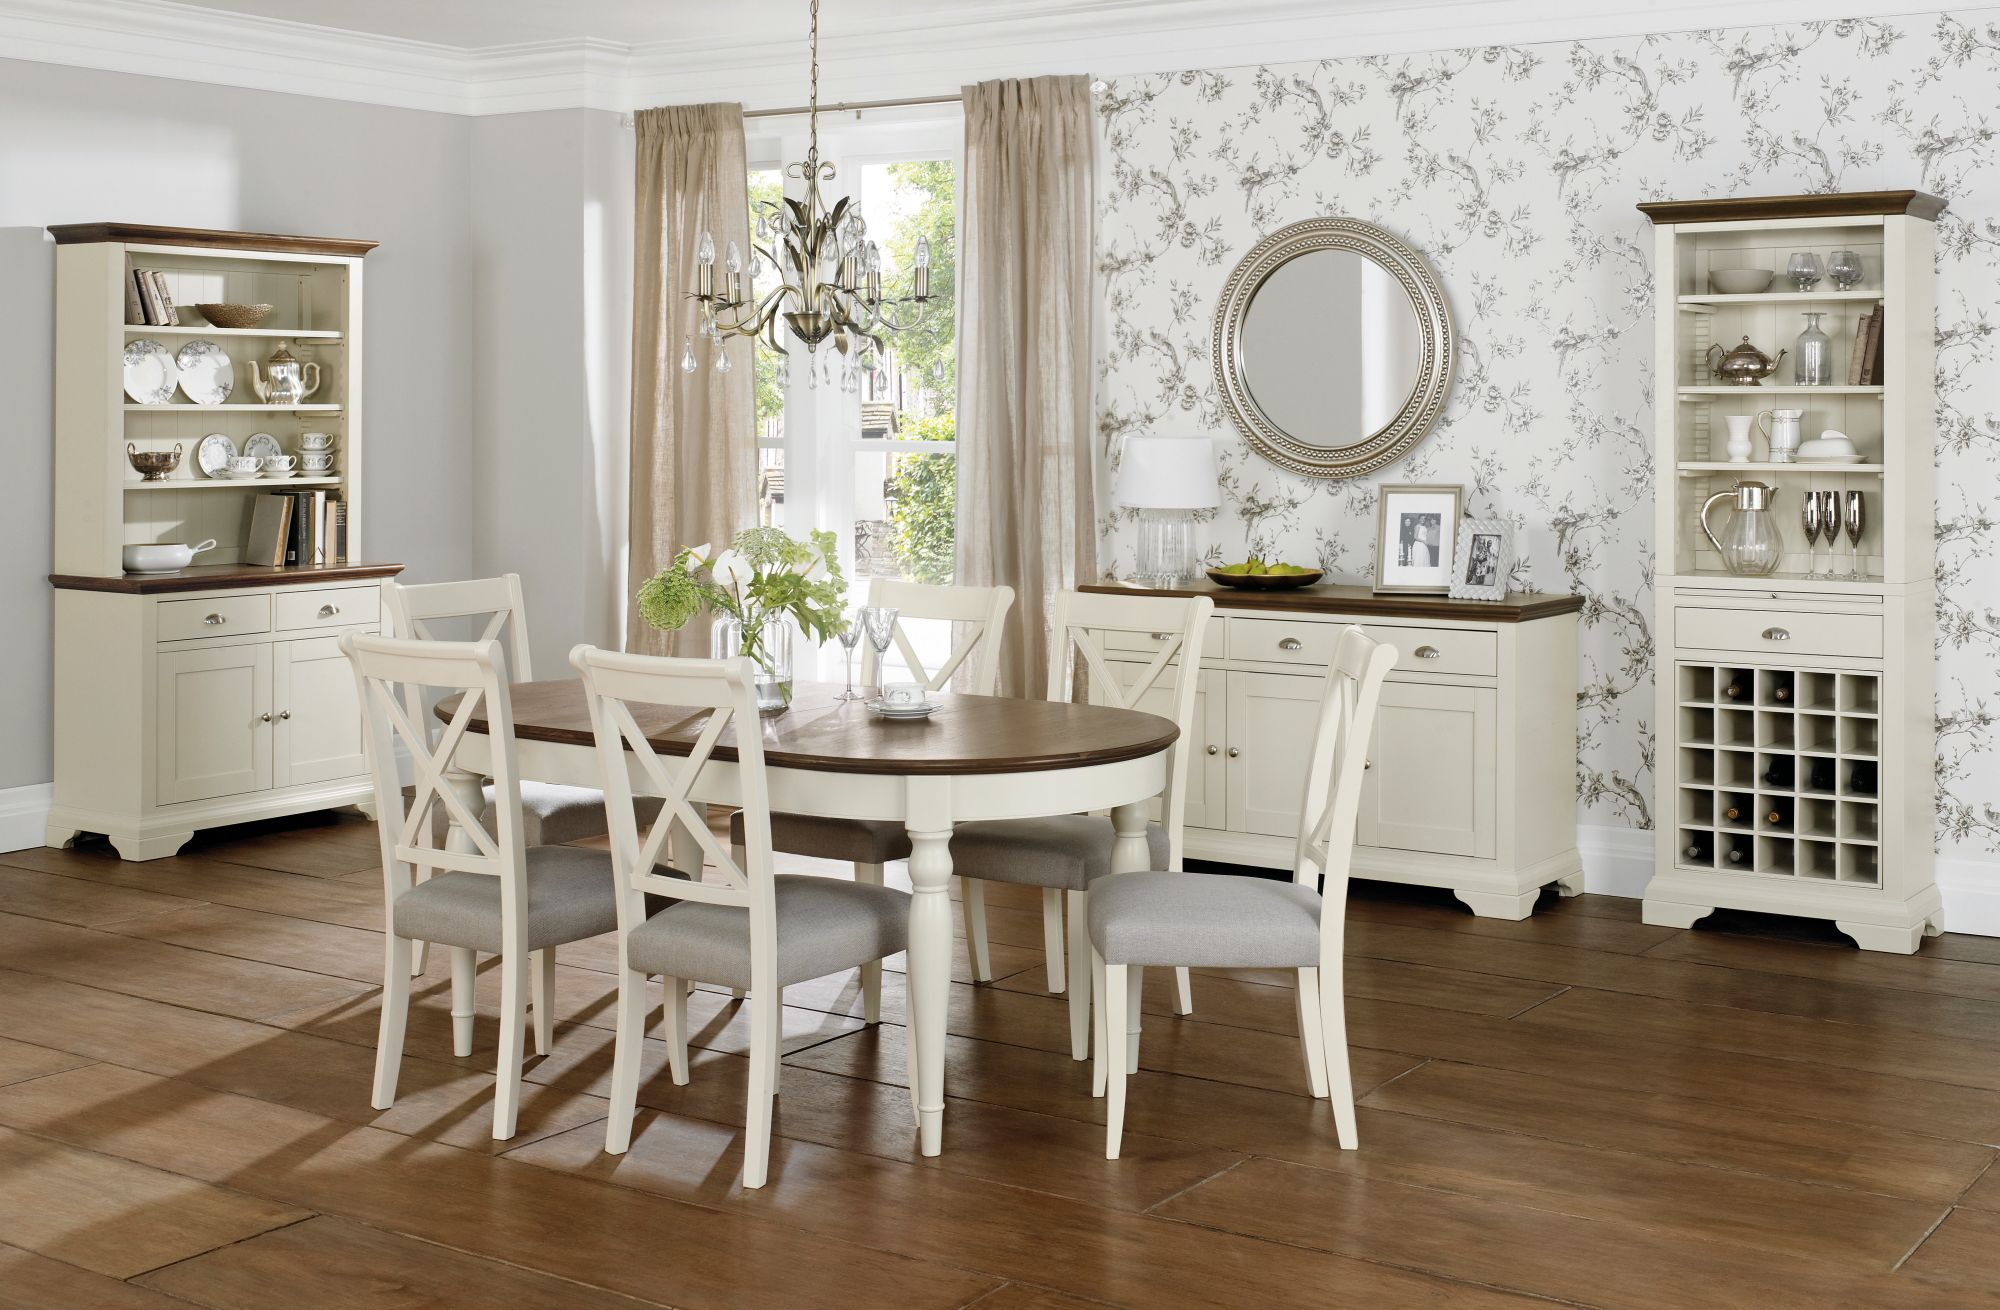 Bentley Designs Hampstead Walnut Dining Table With 6 X Back